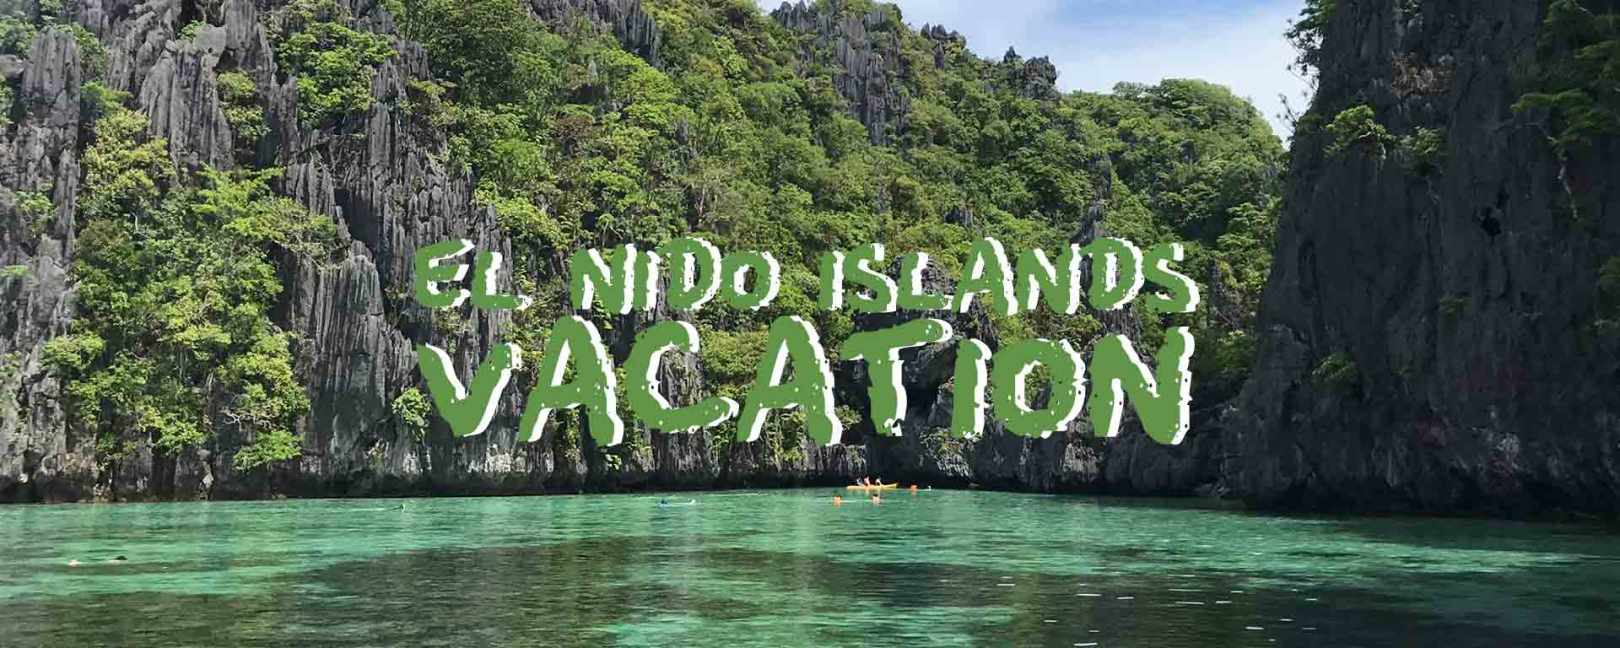 El-Nido-Islands-Vacation